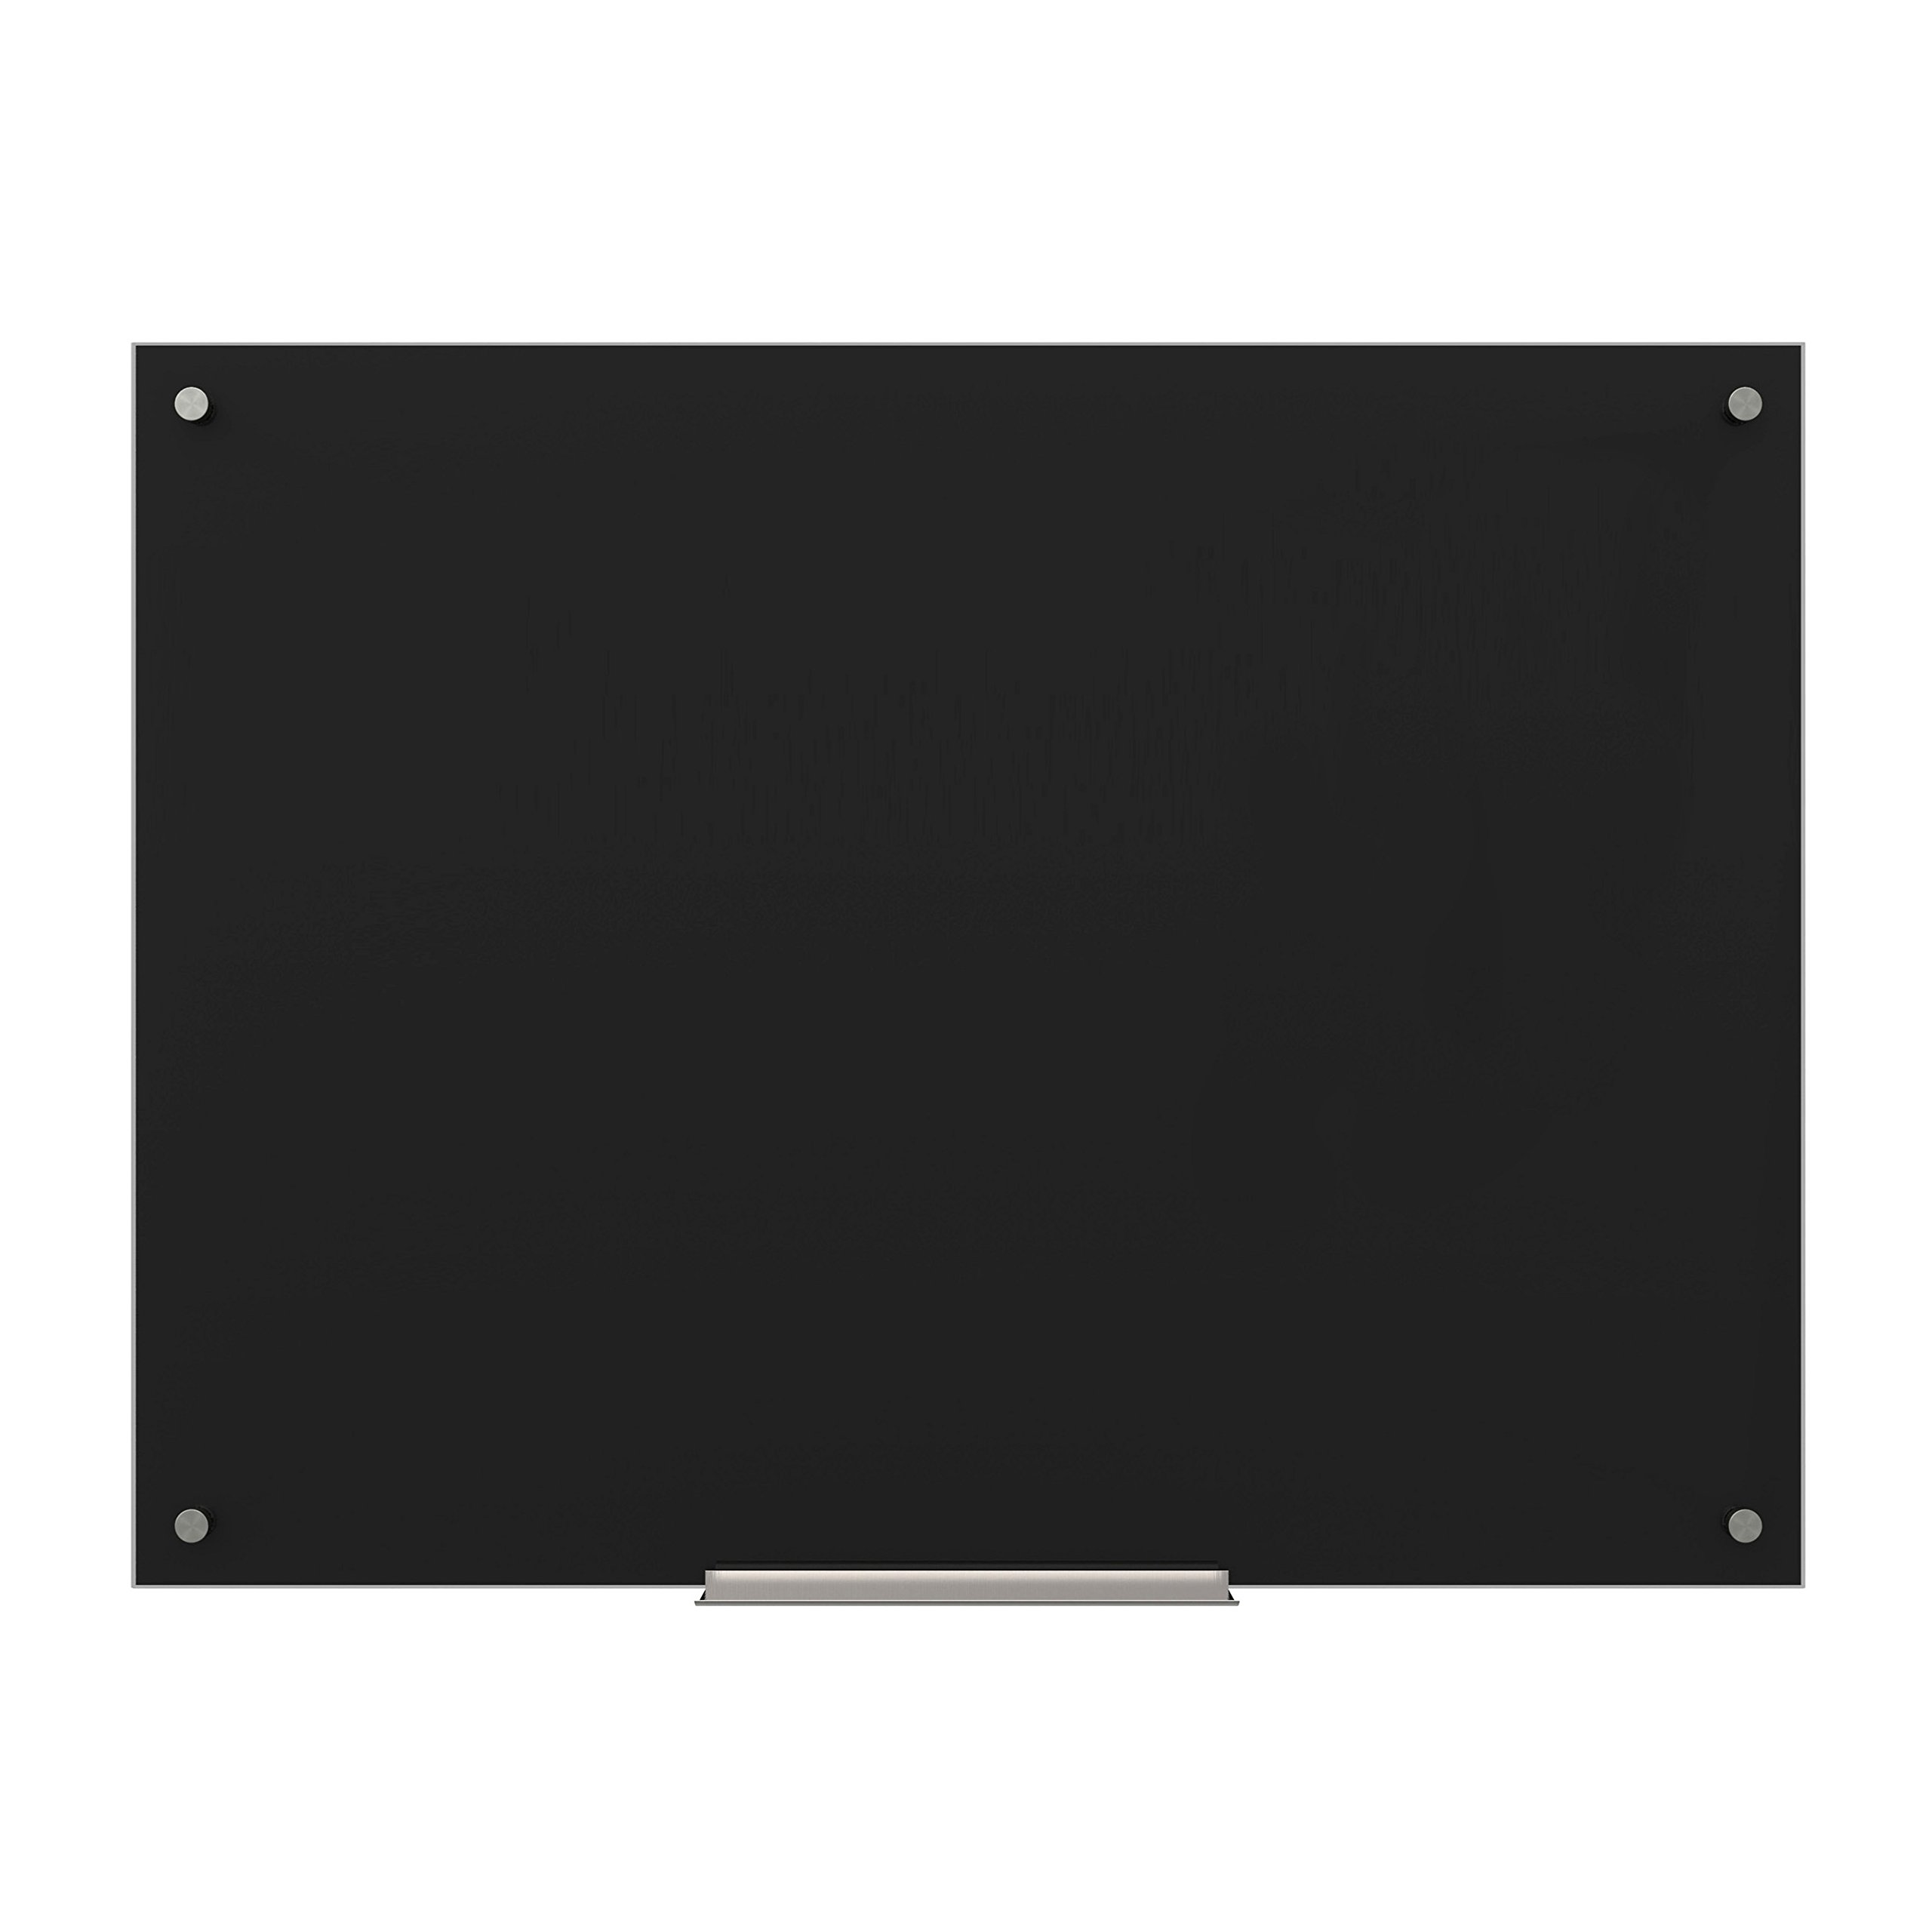 U Brands Glass Dry Erase Board, 47 x 35 Inches, Black Surface, Frameless